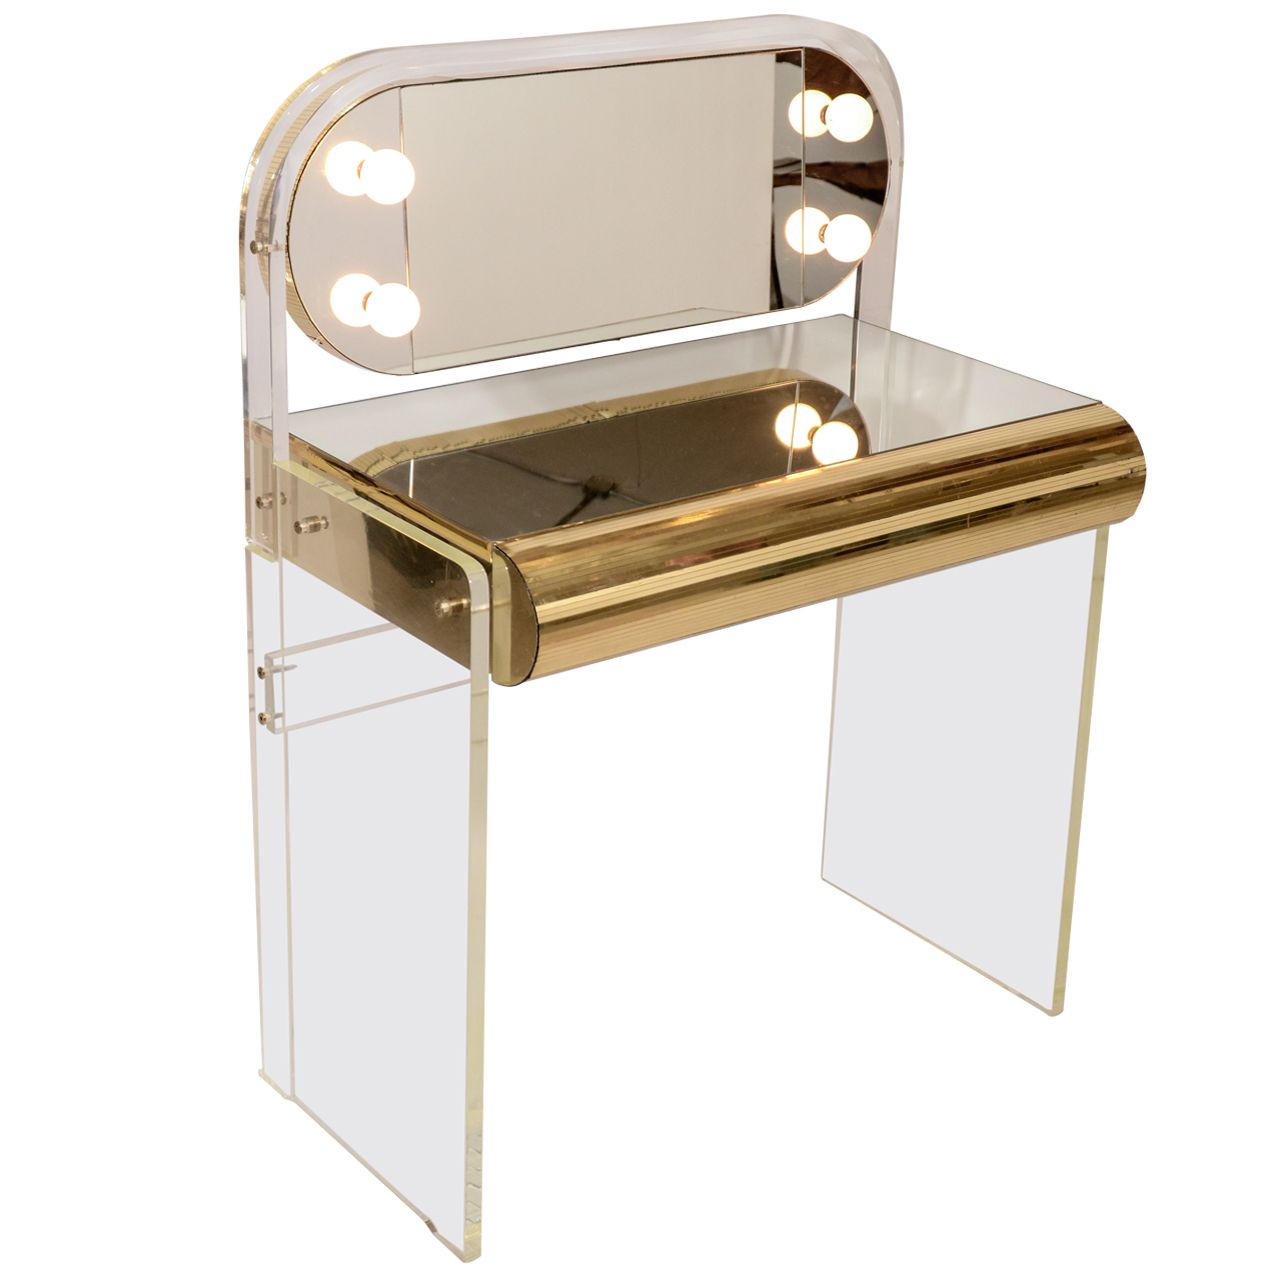 Lucite Vanity Chair Lucite Vanity Table Vanity Tables Vanities And Modern